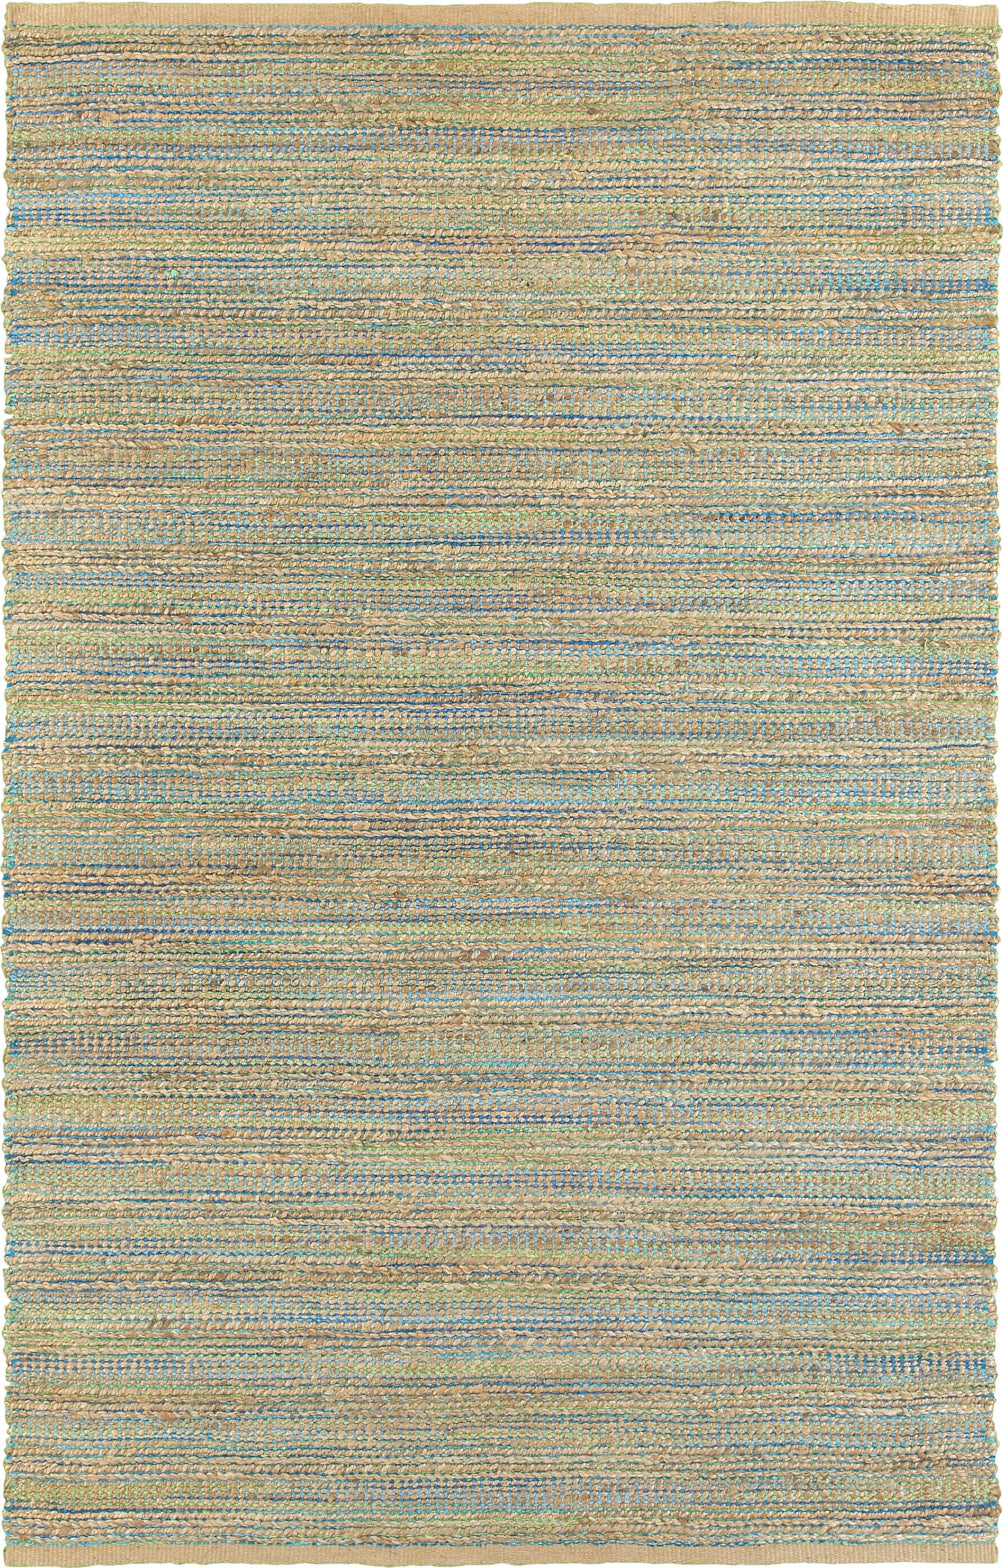 LR Resources Natural Fiber 3313 Blue / Green Area Rug main image